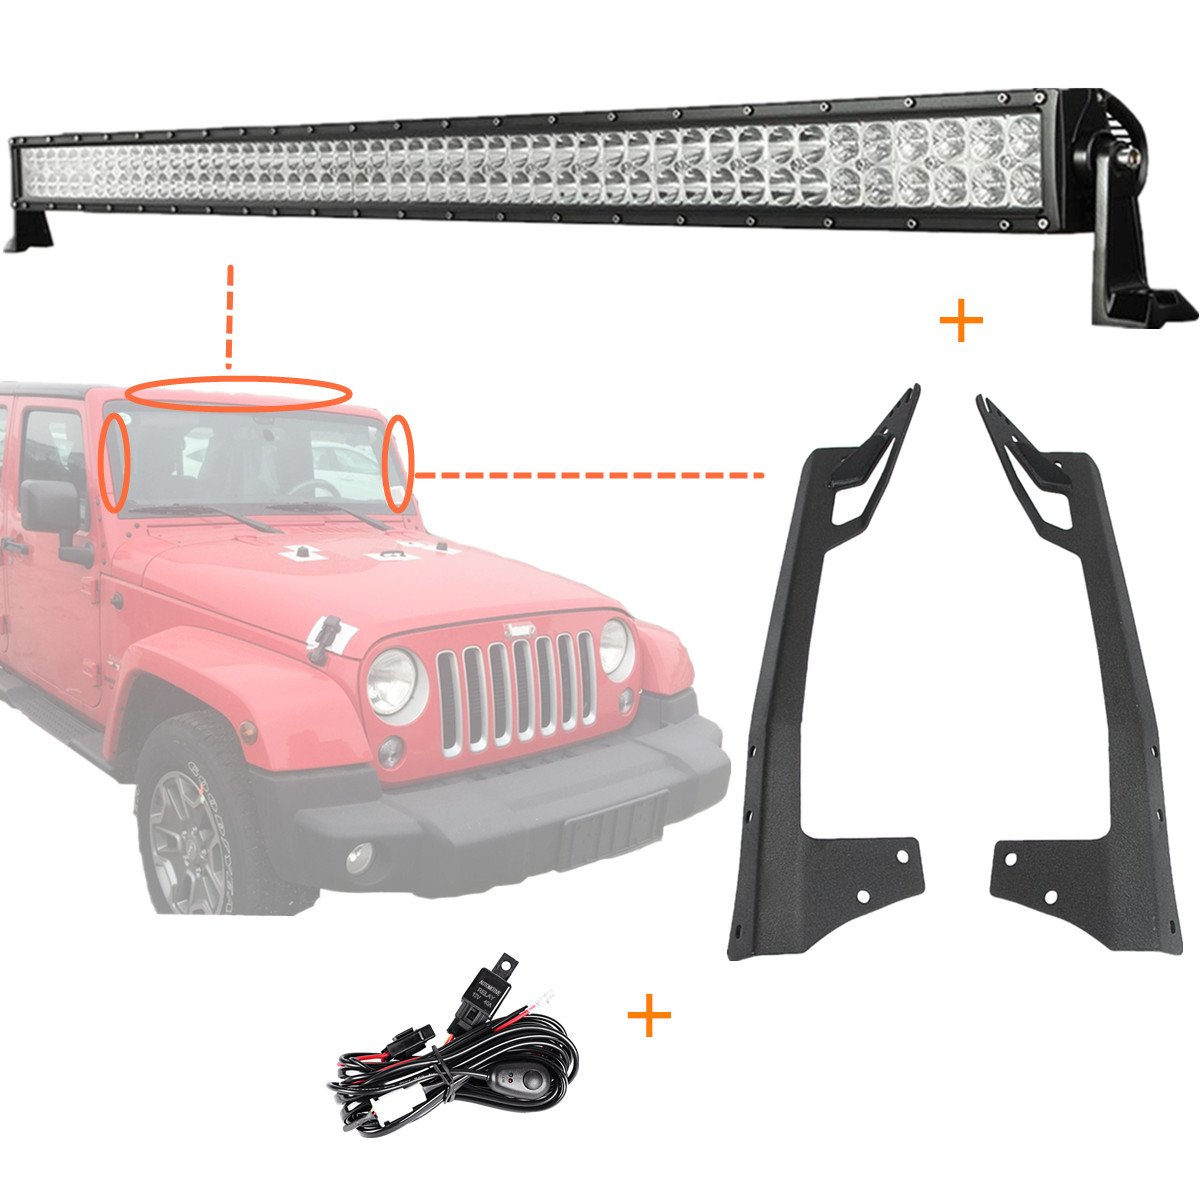 Fit Jeep Wrangler JK 2007-2017 Offroad Light Bar Kit, POWLAB 52' inch 6000K White Flood Spot Combo Beam 300W Waterproof Dustproof Shockproof Driving Light + Windshield Mount Bracket + Wiring Harness